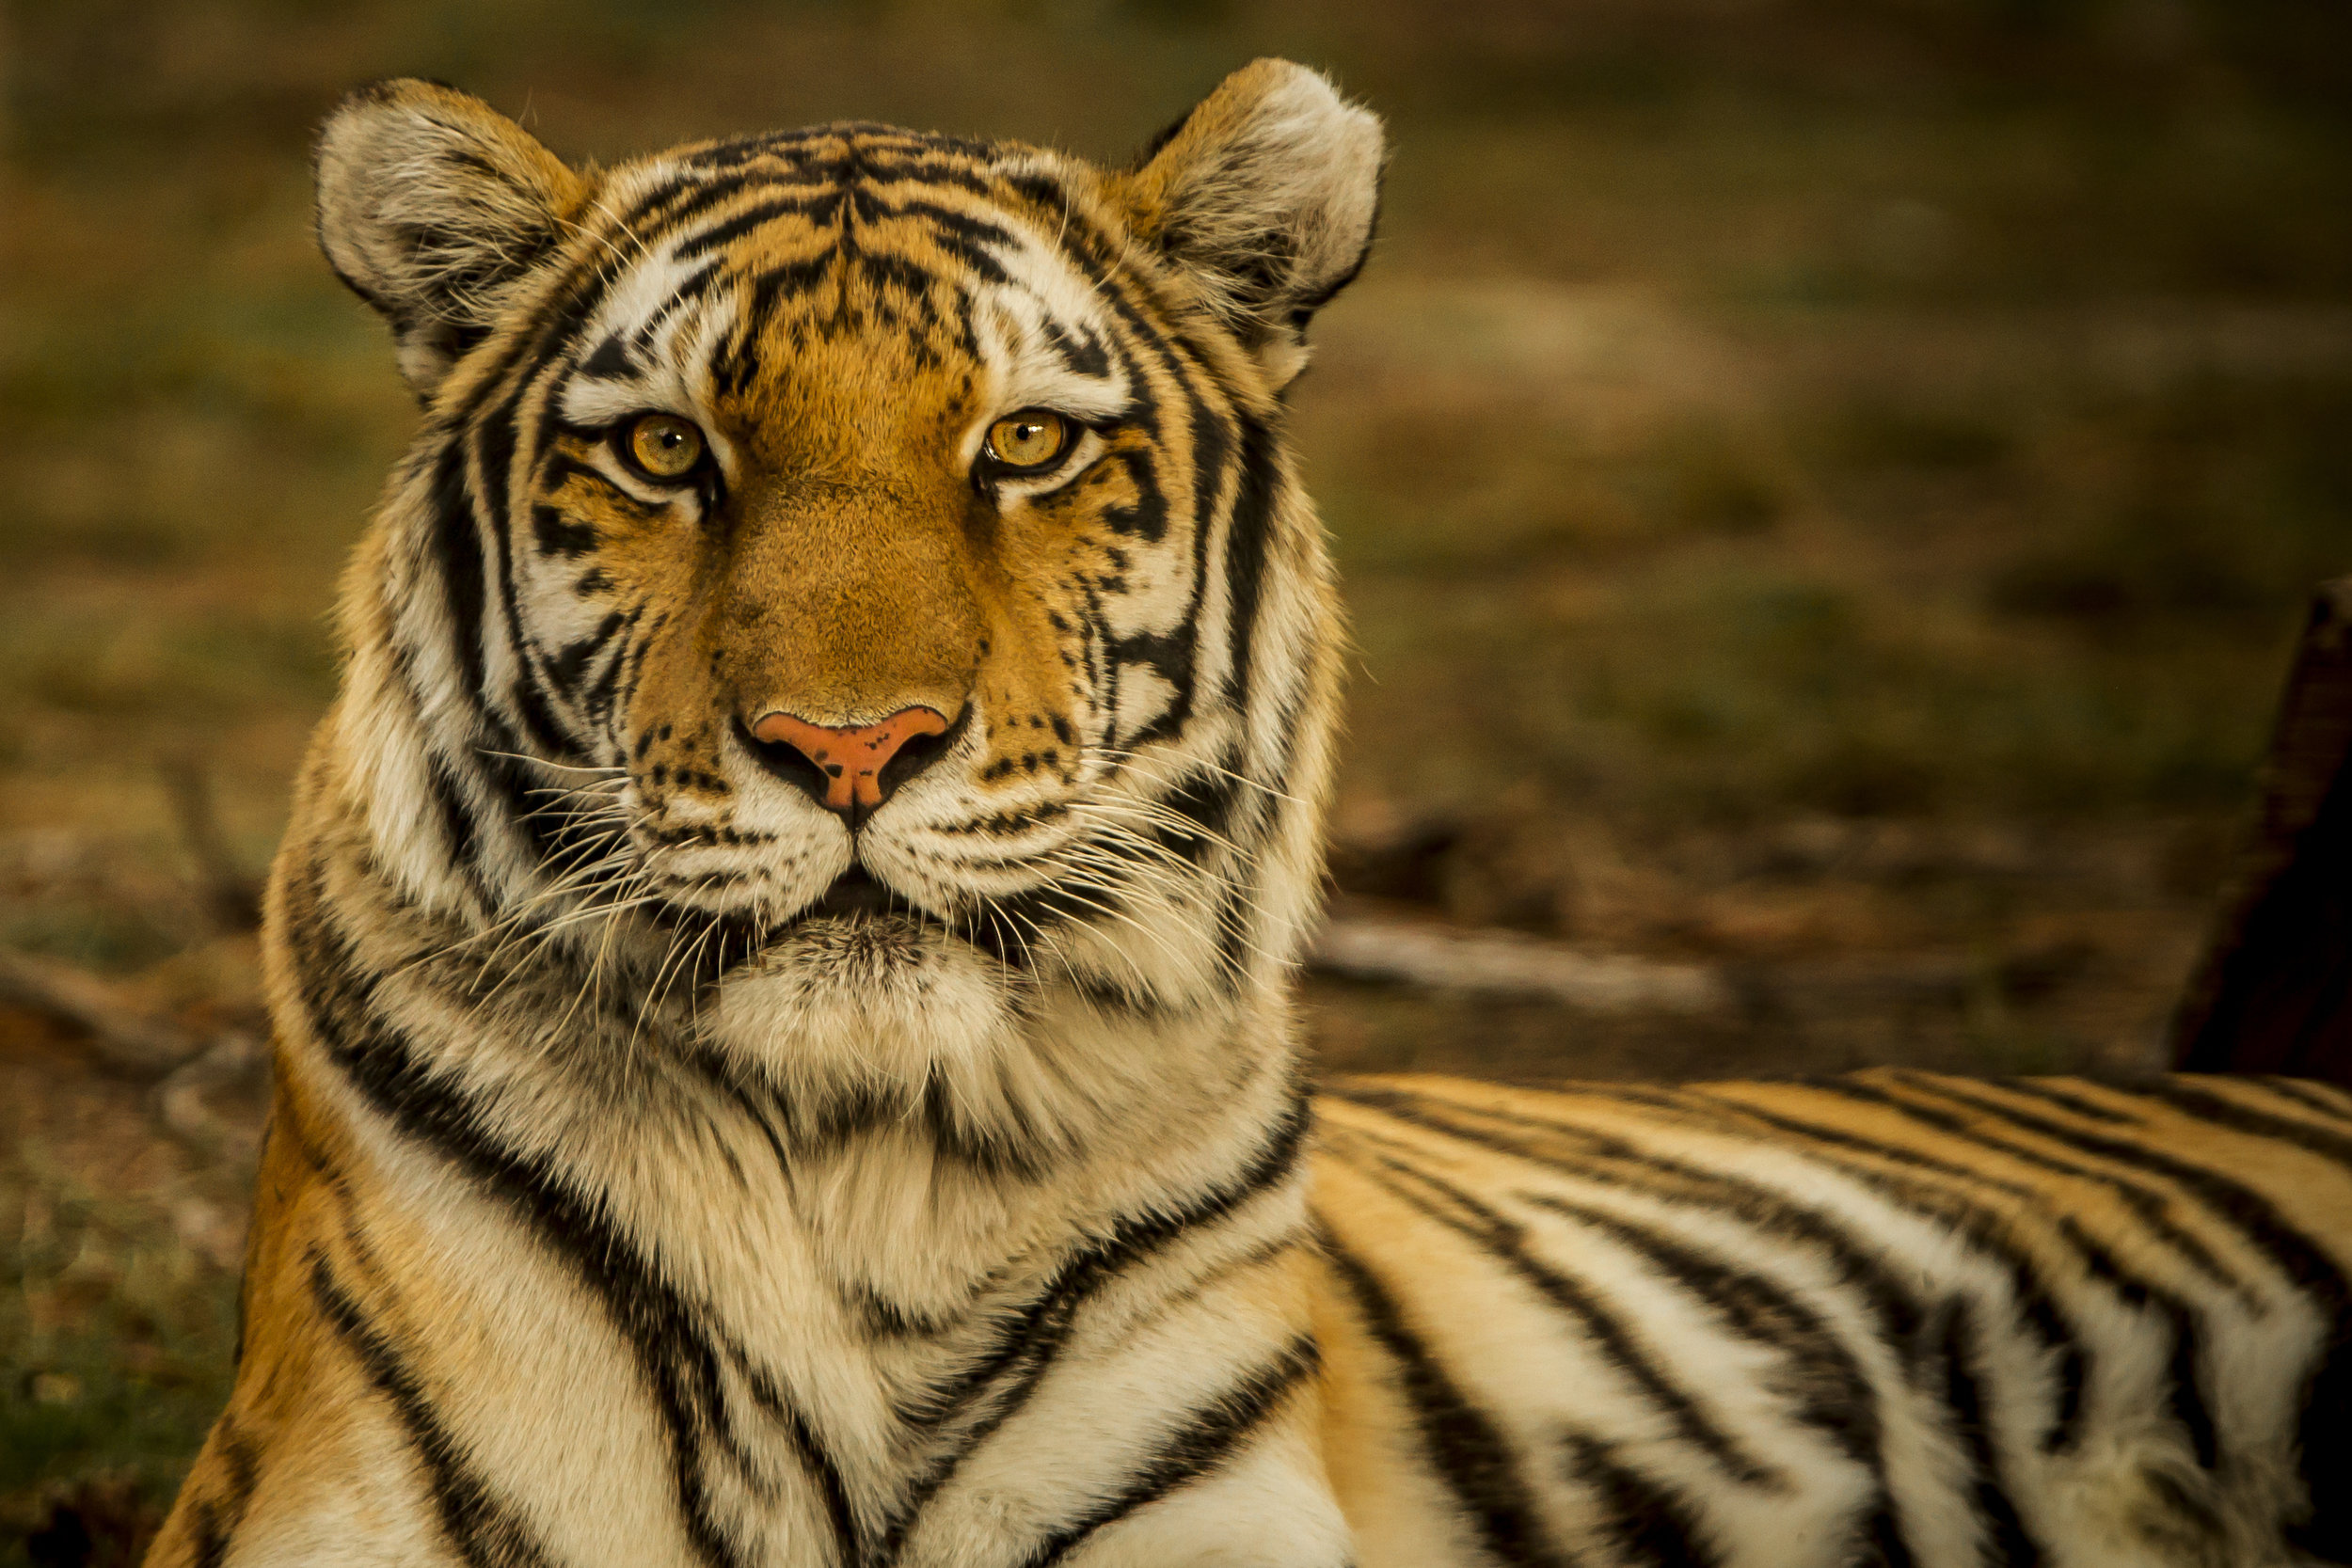 To Our Media Friends, - Help us raise awareness of tiger conservation and celebrate the community coming together for wildlife! Click below to view our press kit.